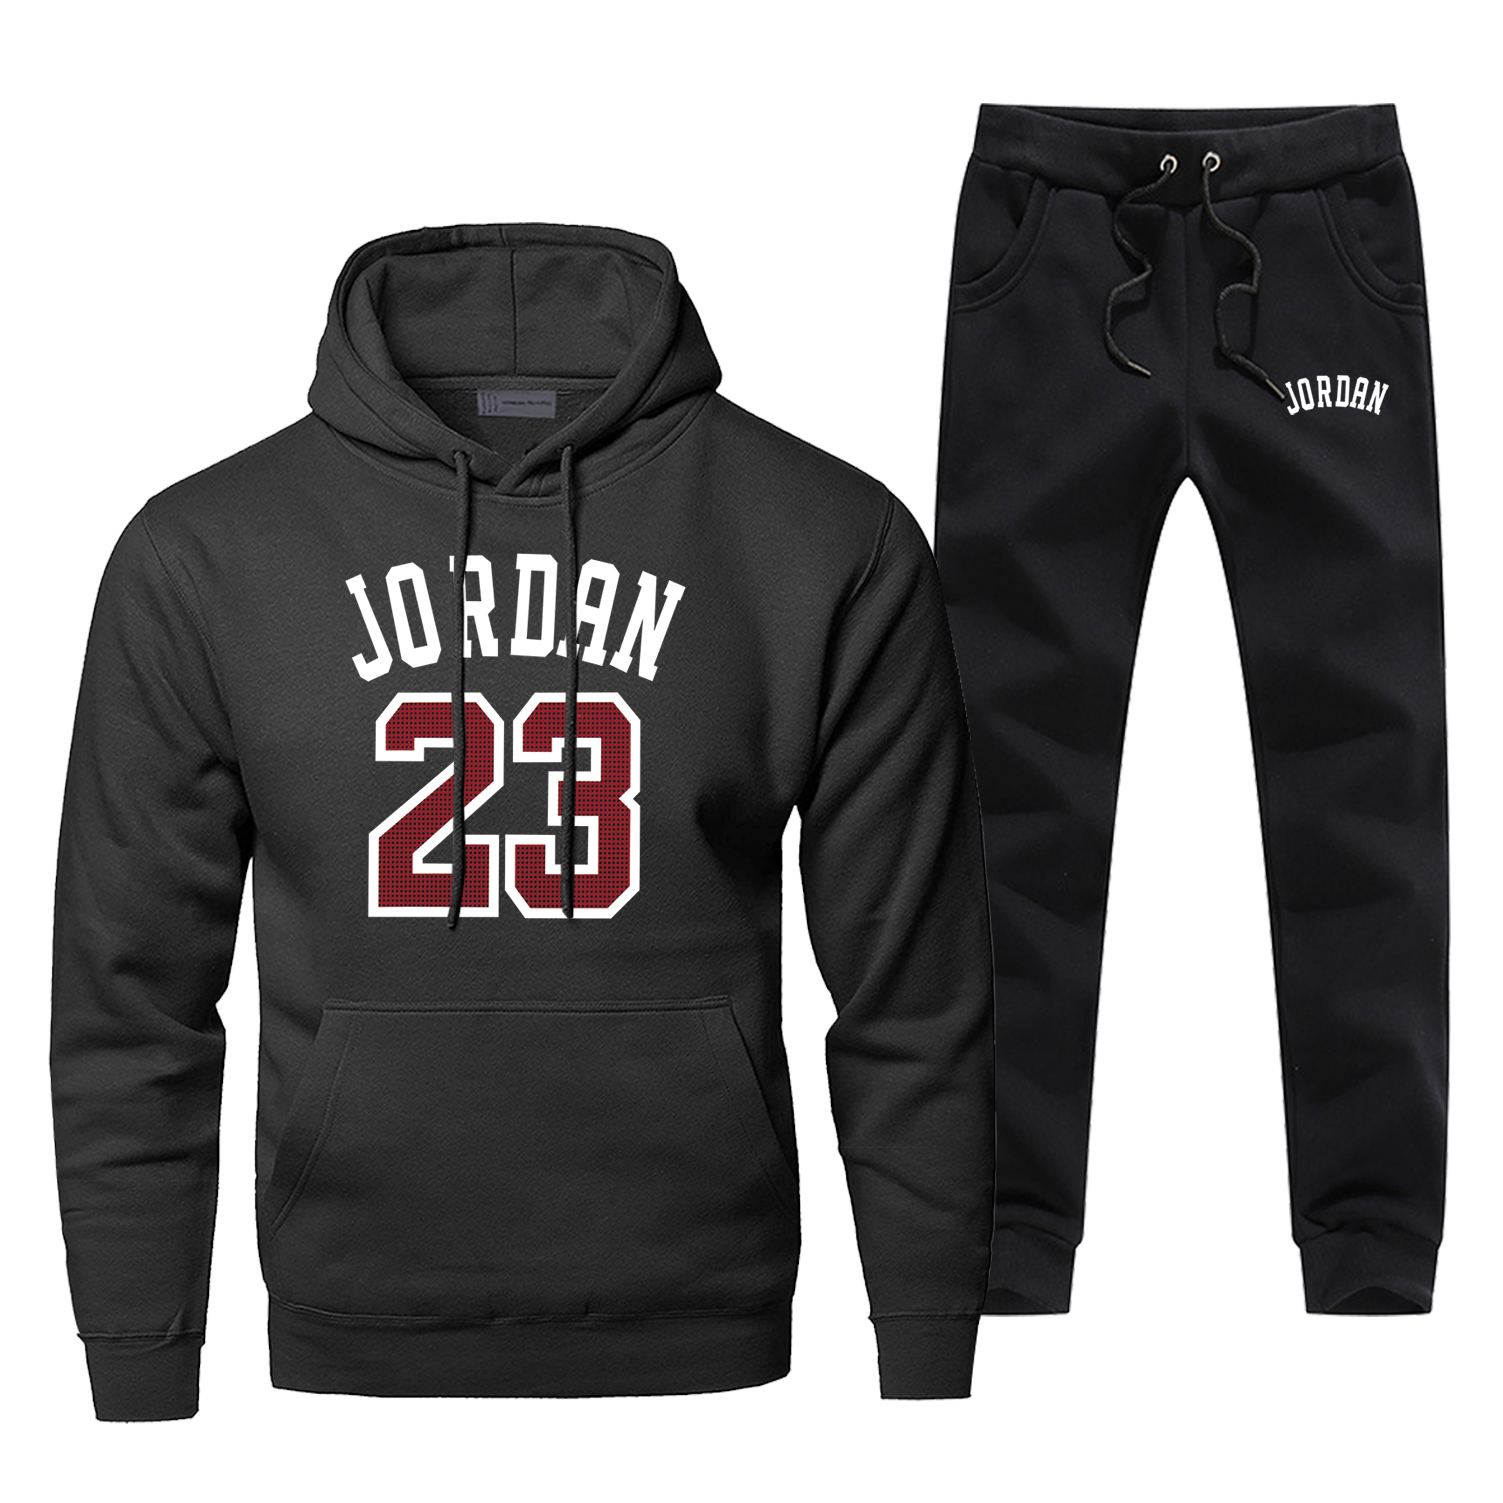 Jordan 23 Basketball Sports Hoodie Pants Men Sets Track Suit 2 Piece Tops Pant Sweatshirt Sweatpants Sportswear Autumn Tracksuit